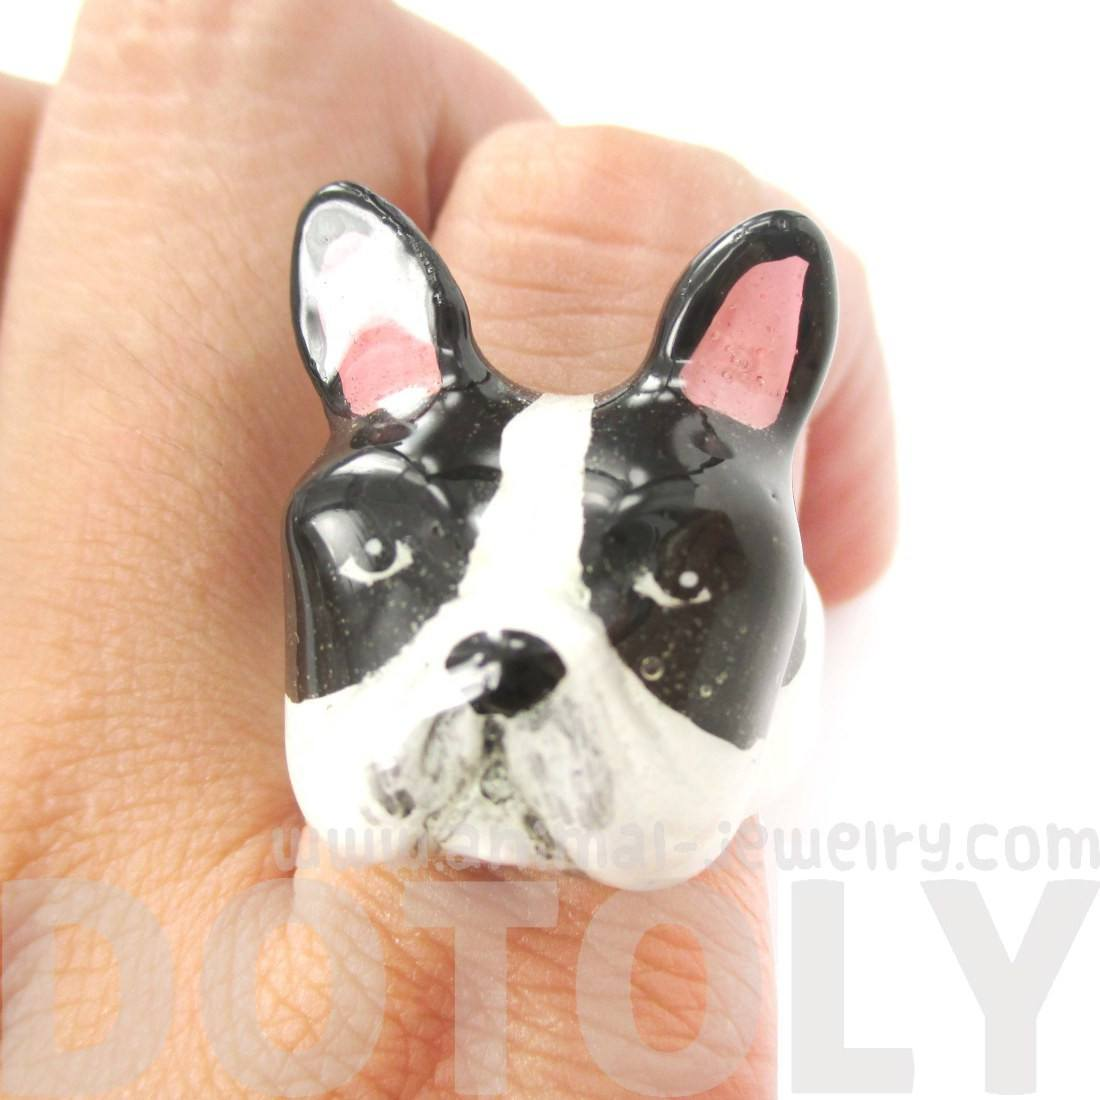 3D Boston Terrier Dog Shaped Enamel Animal Ring in Black and White